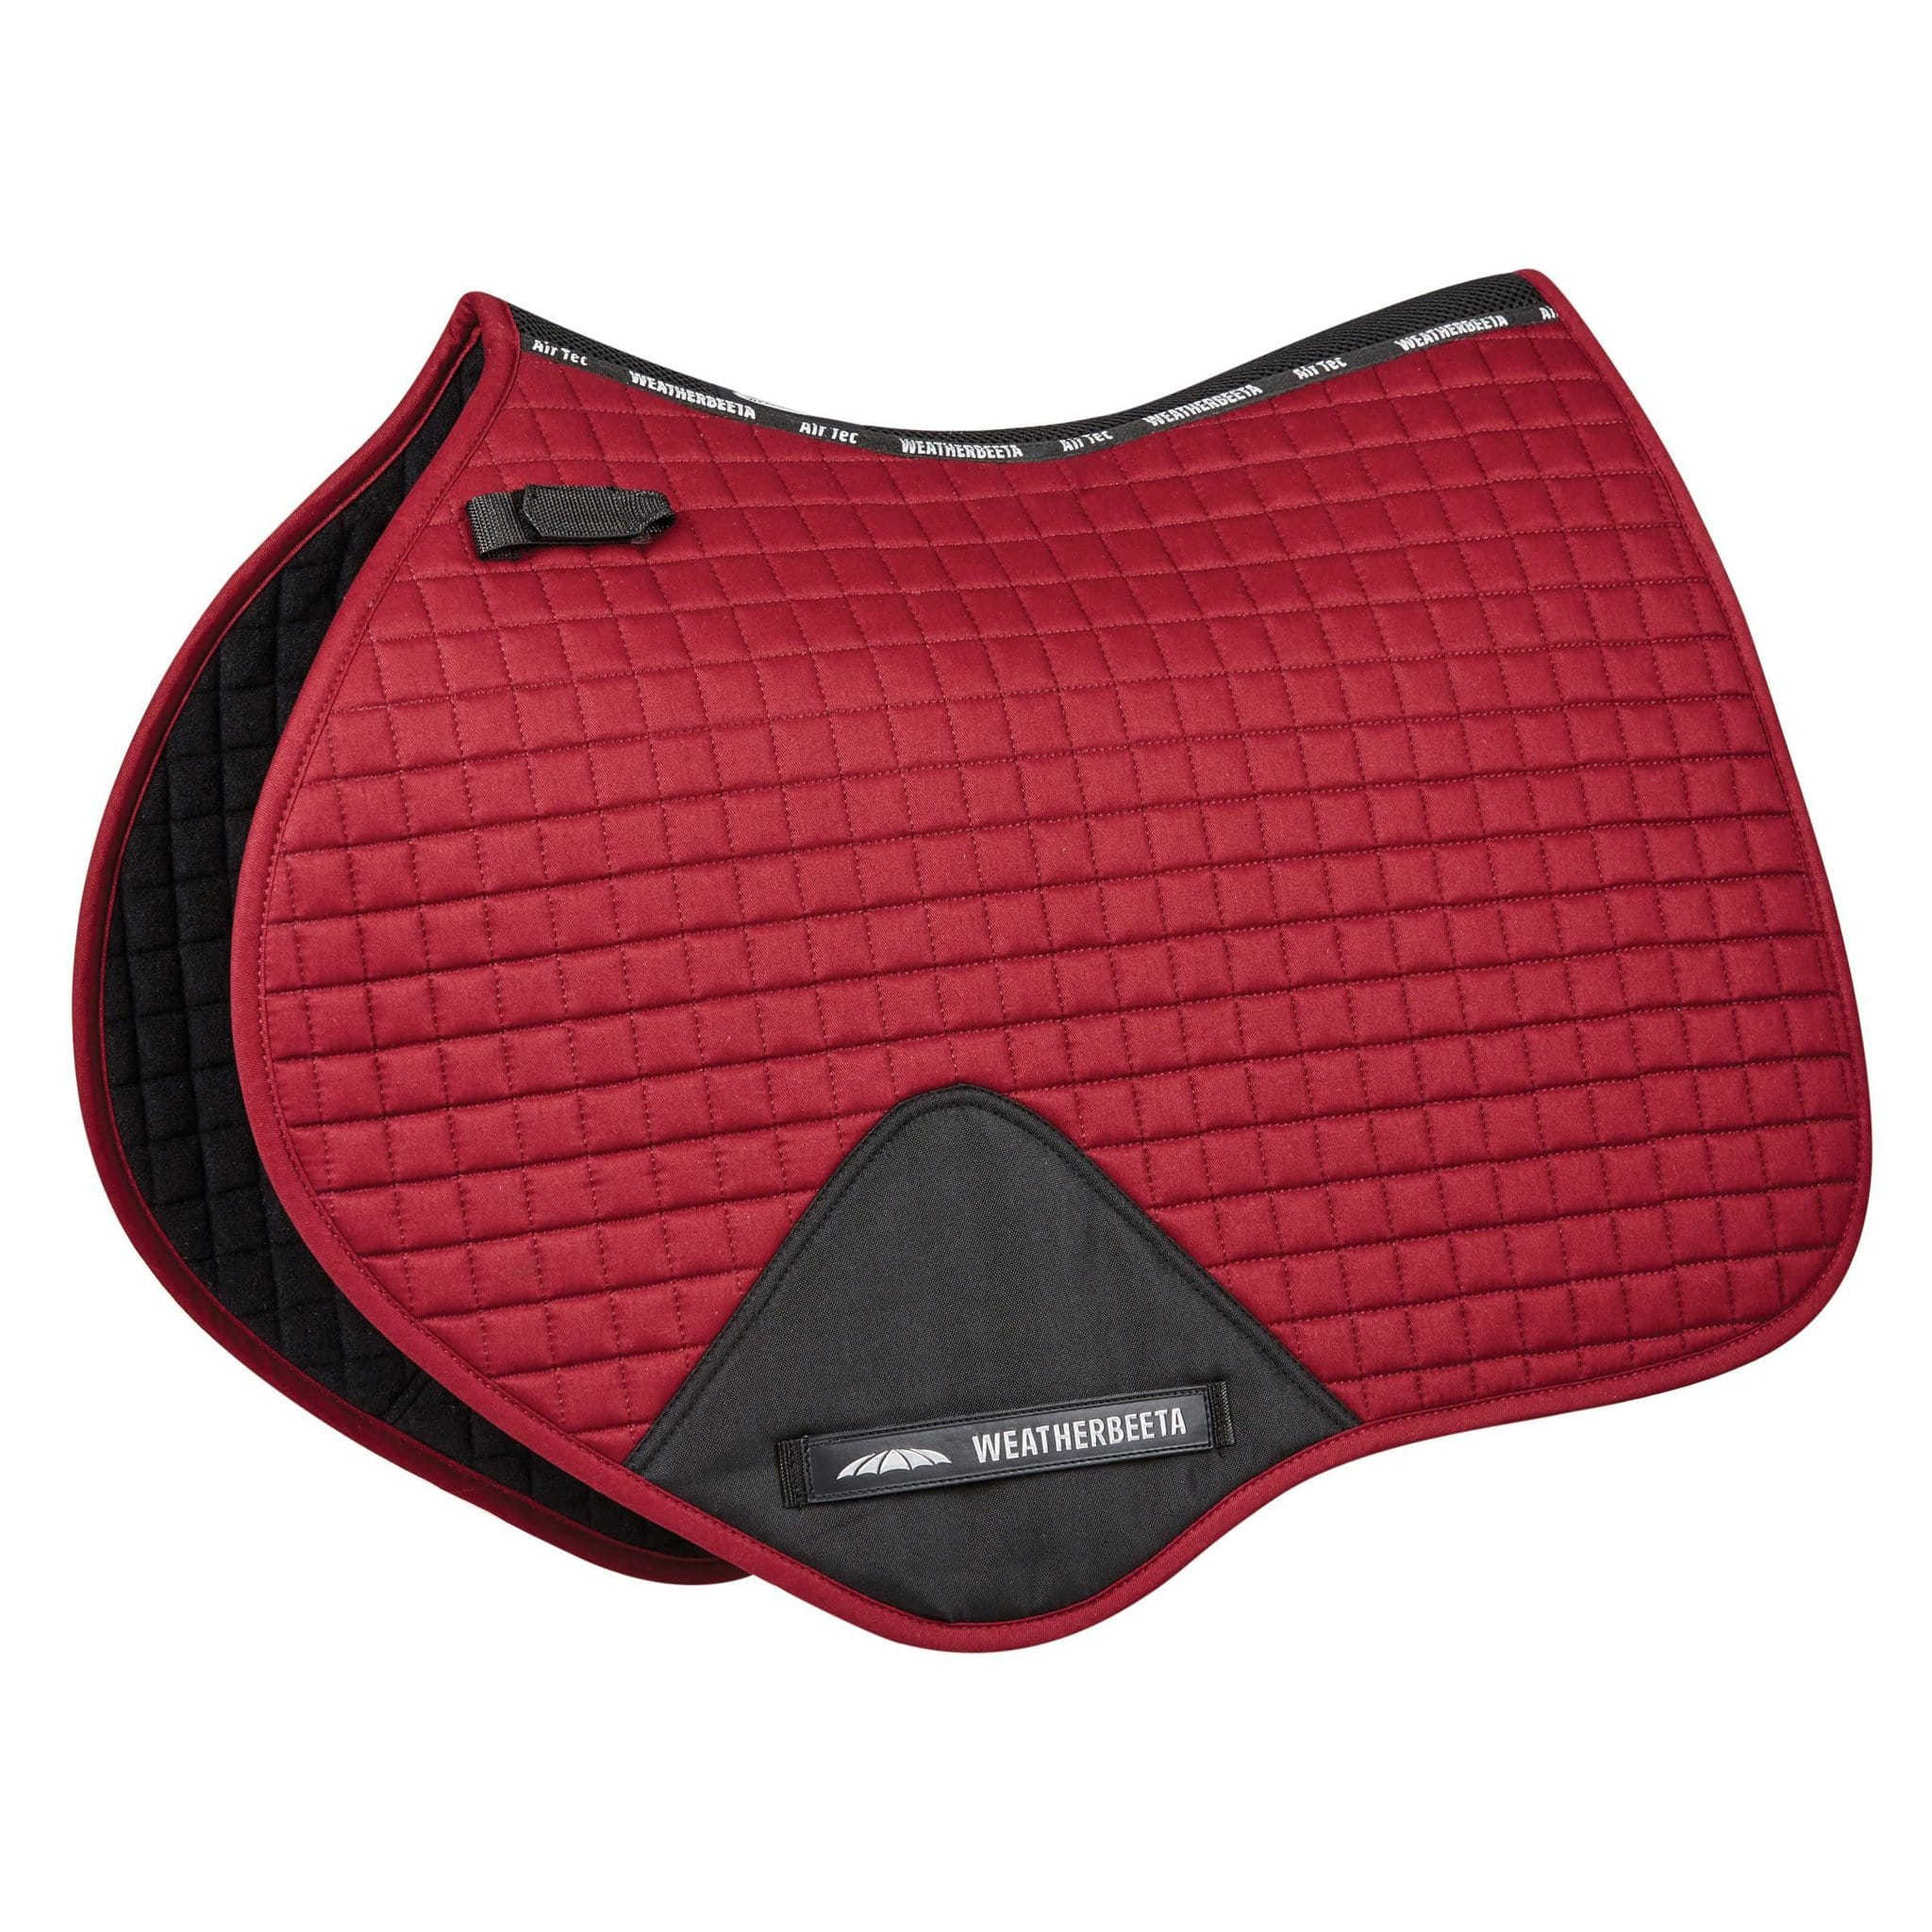 WeatherBeeta Prime Close Contact Jump Saddle Pad in Maroon 815073